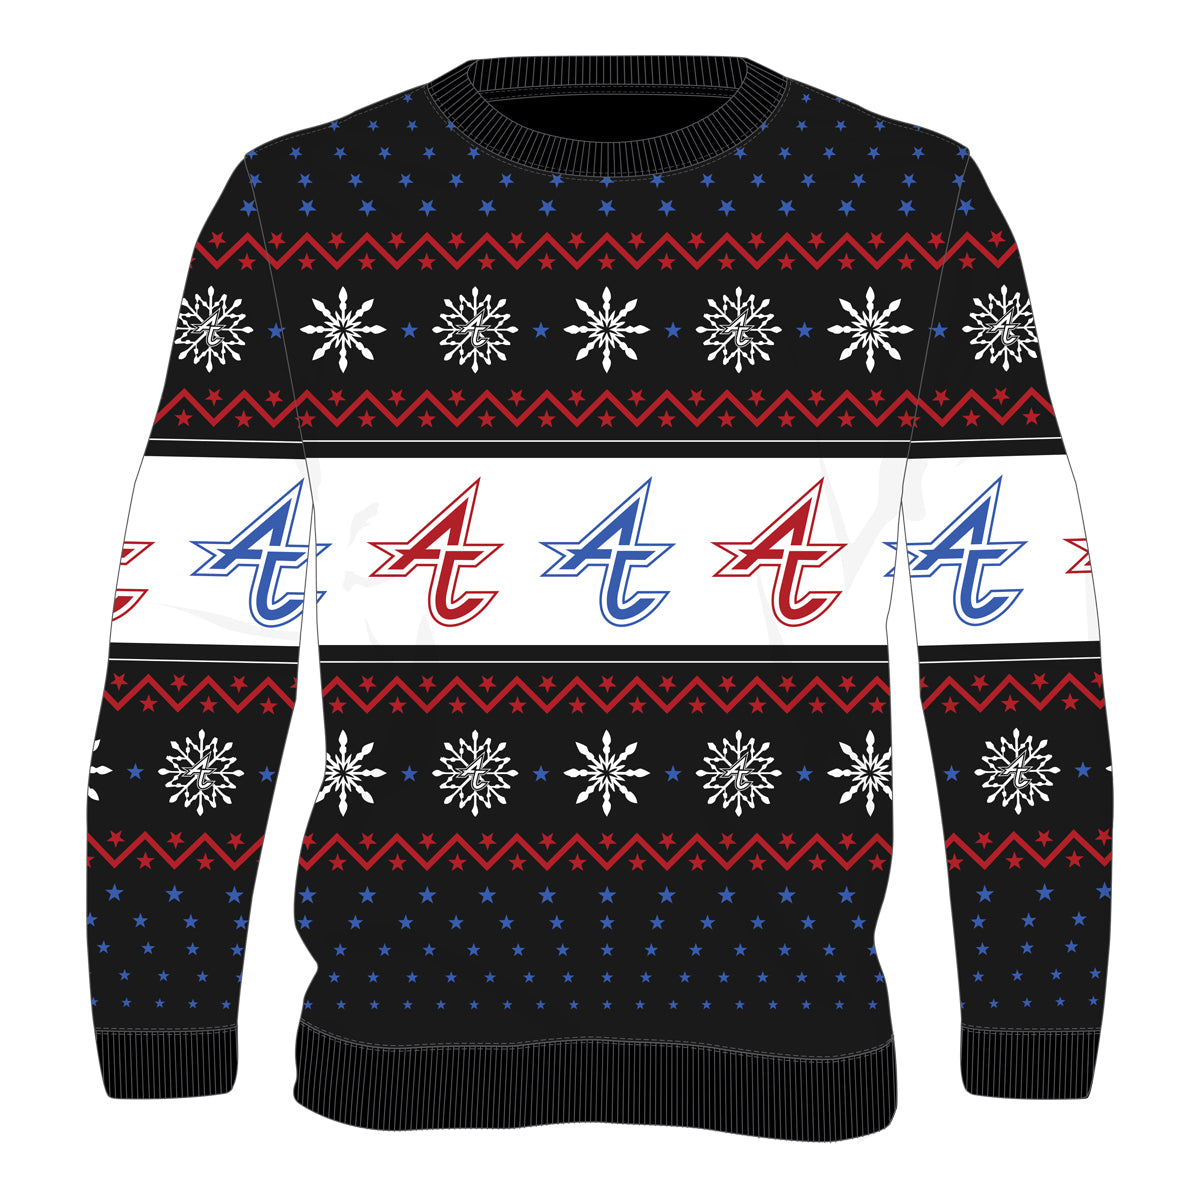 AC Holiday Sweater